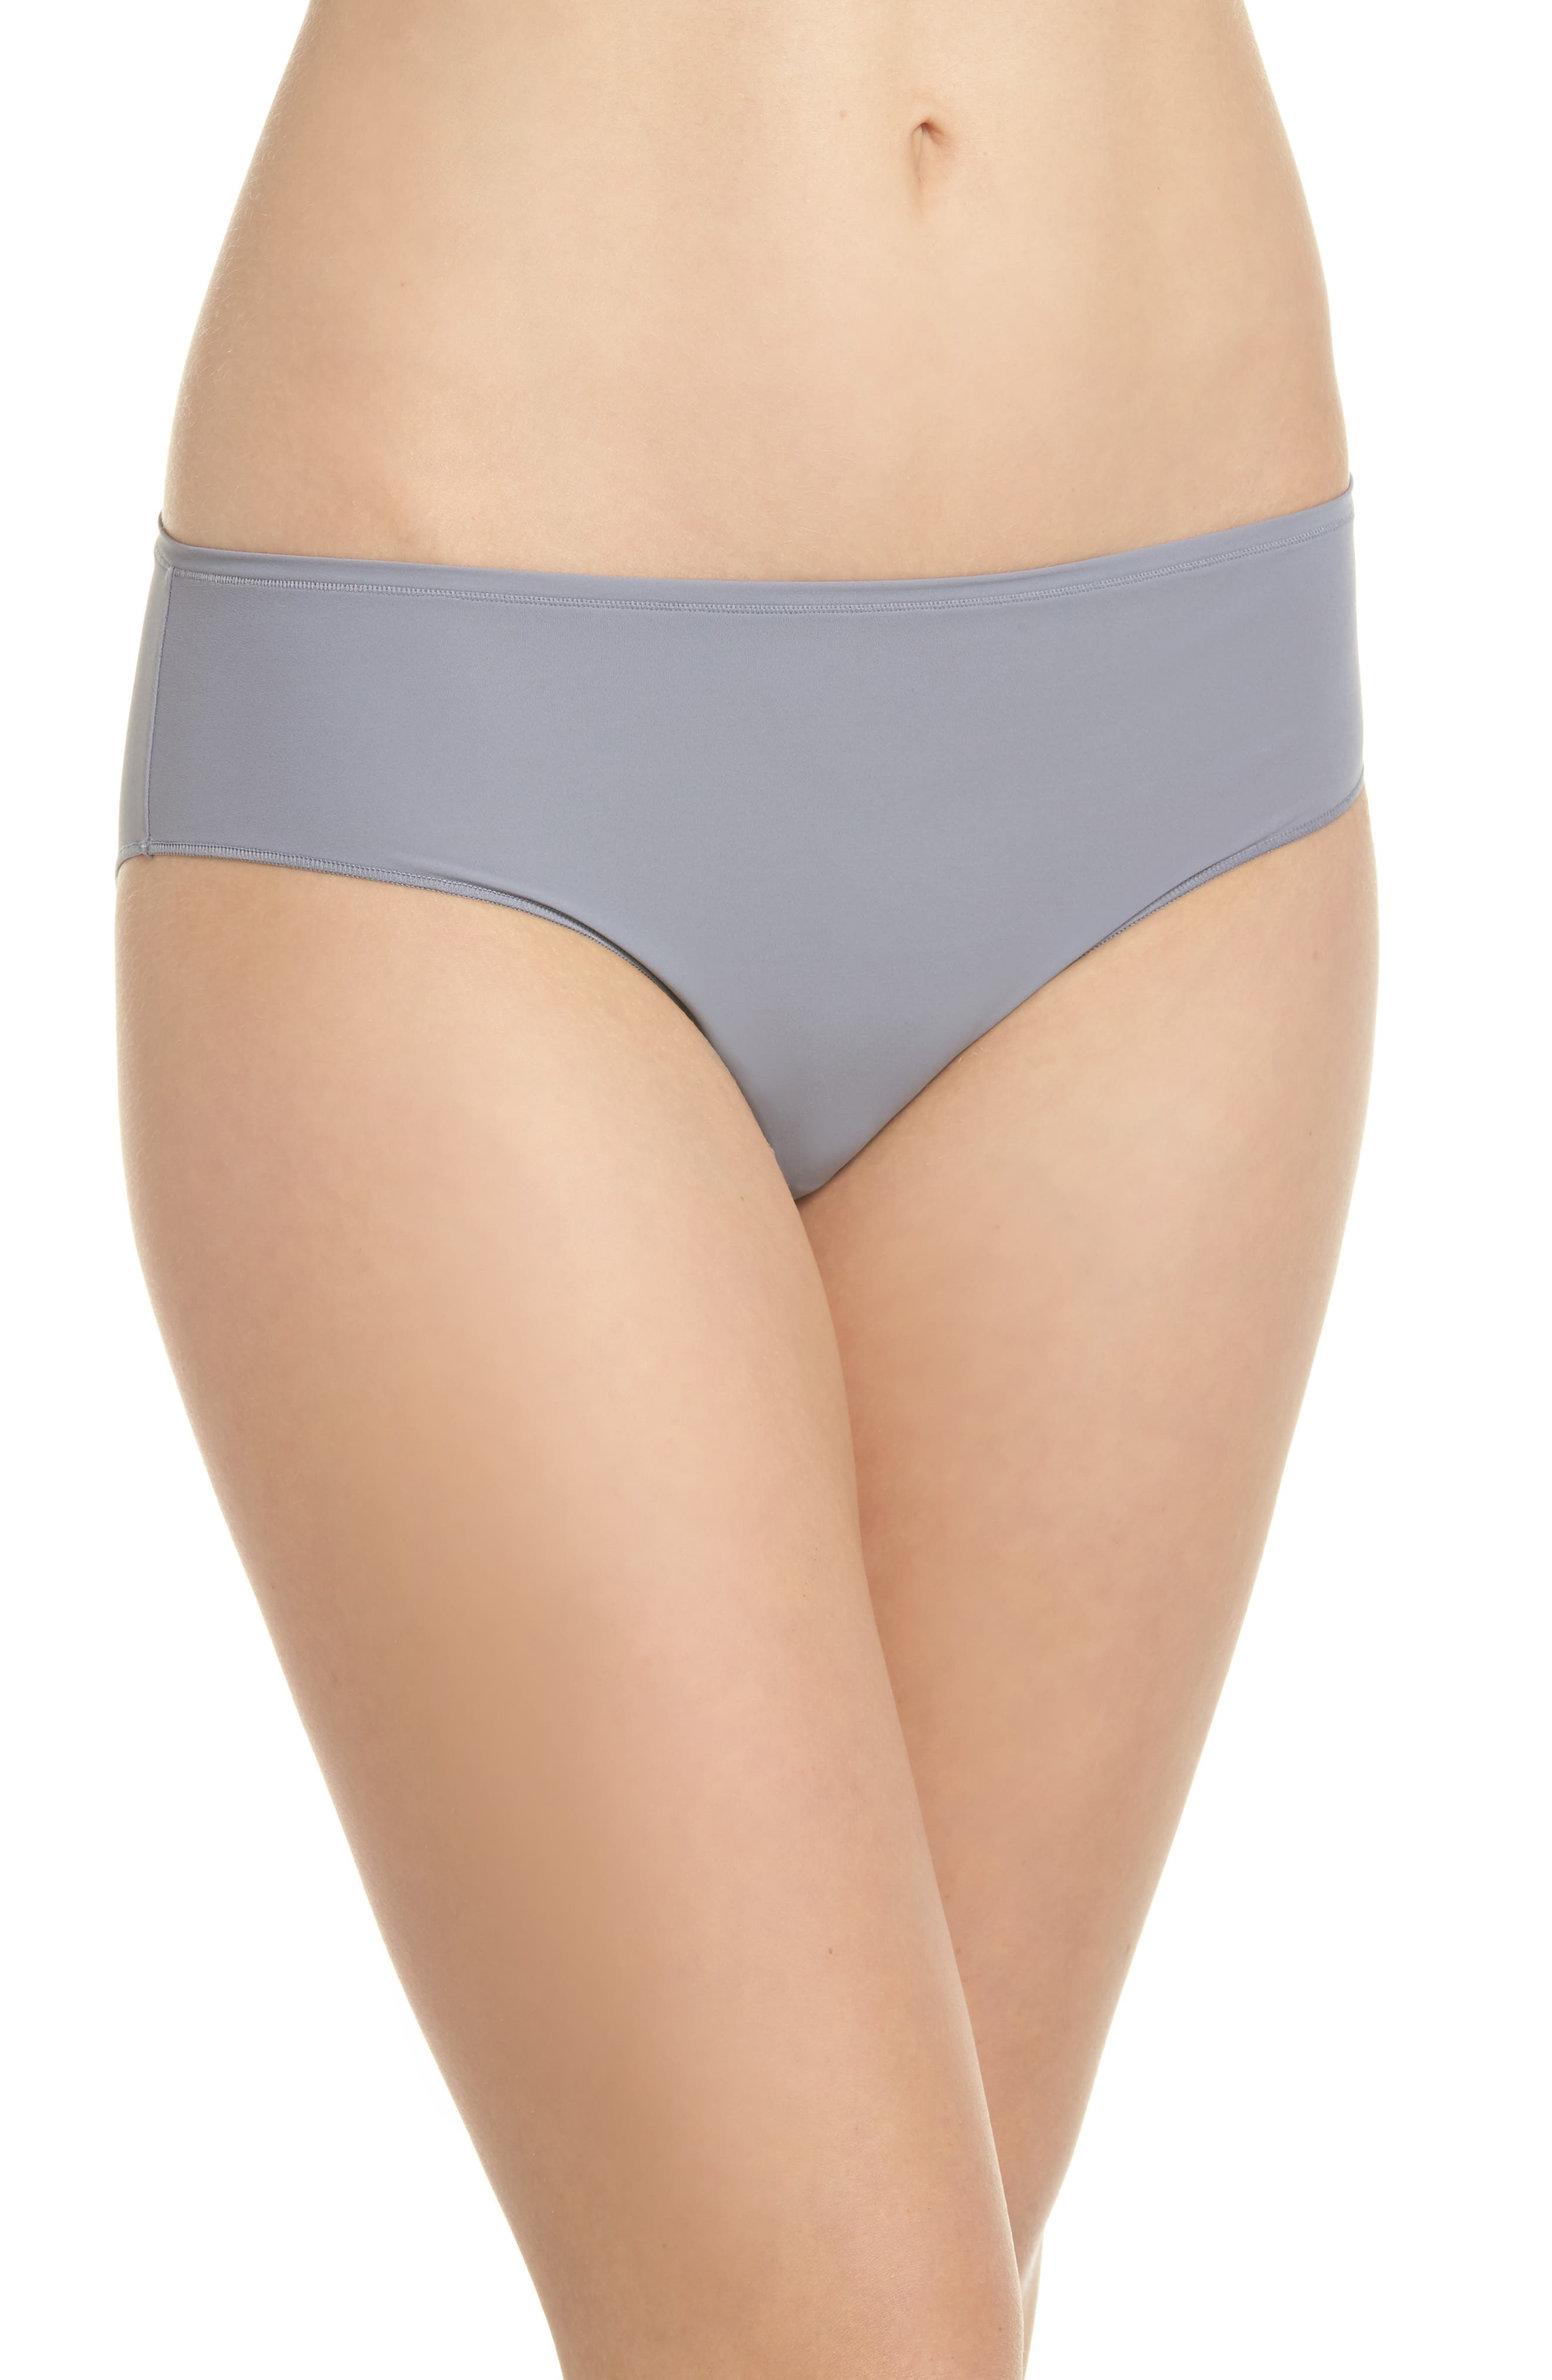 'Allure' Briefs,                             Main thumbnail 1, color,                             Lilac Grey